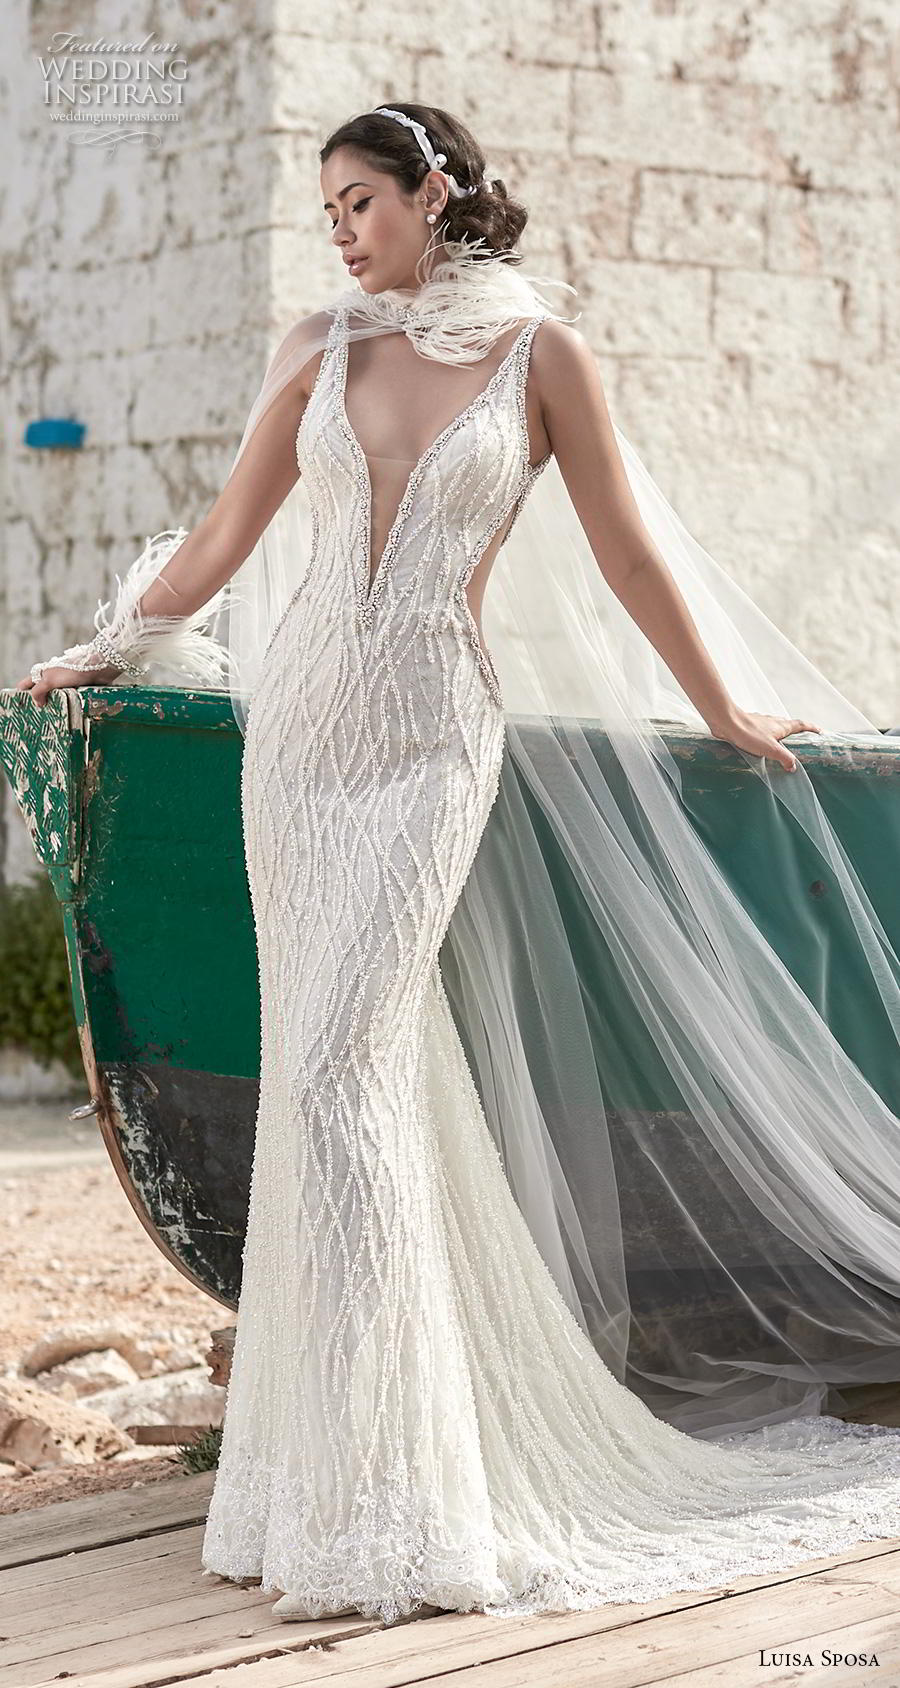 luisa sposa 2020 bridal sleeveless with strap deep plunging v neck full embellishment cut out side glamorous sexy fit and flare sheath wedding dress chapel train (16) mv